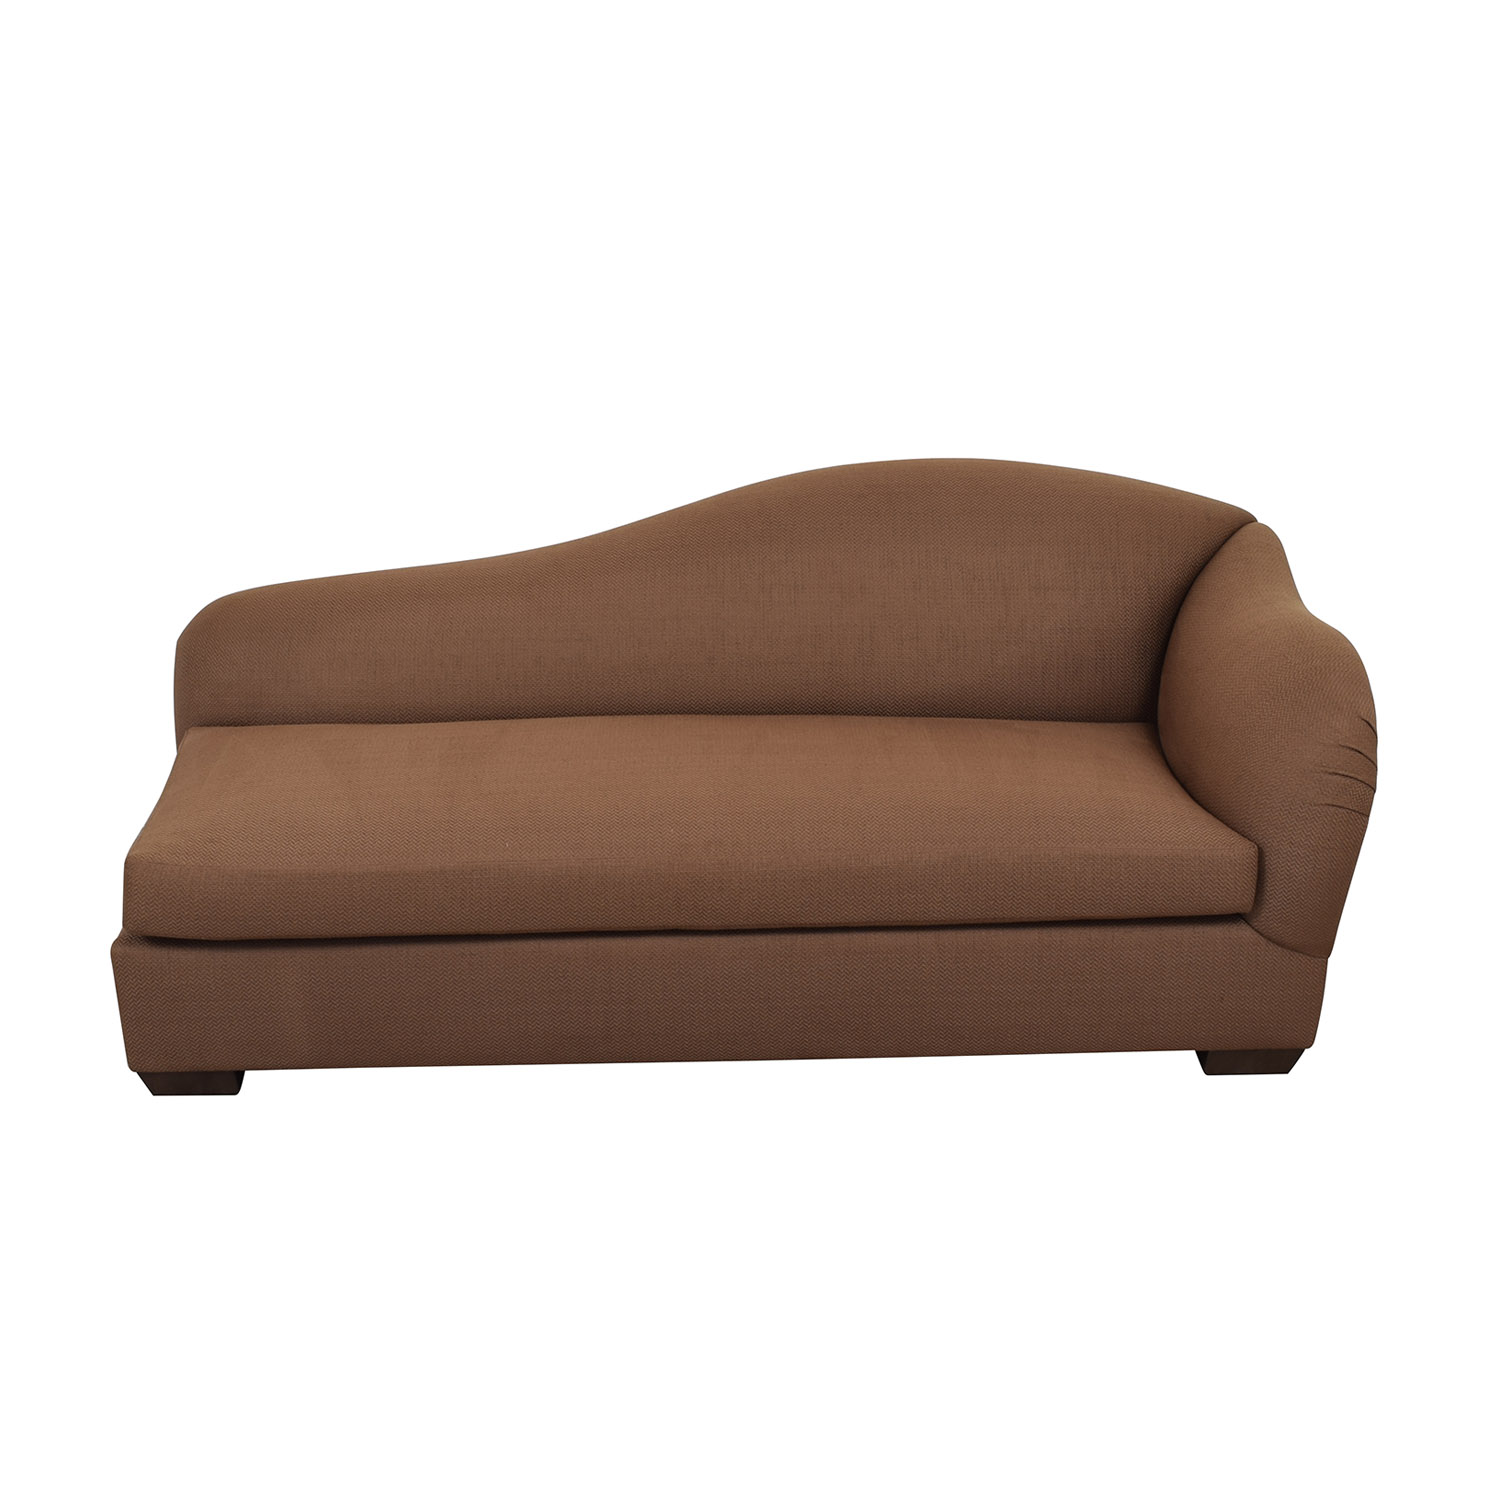 Furniture Masters Furniture Masters Brown Chaise Lounge discount